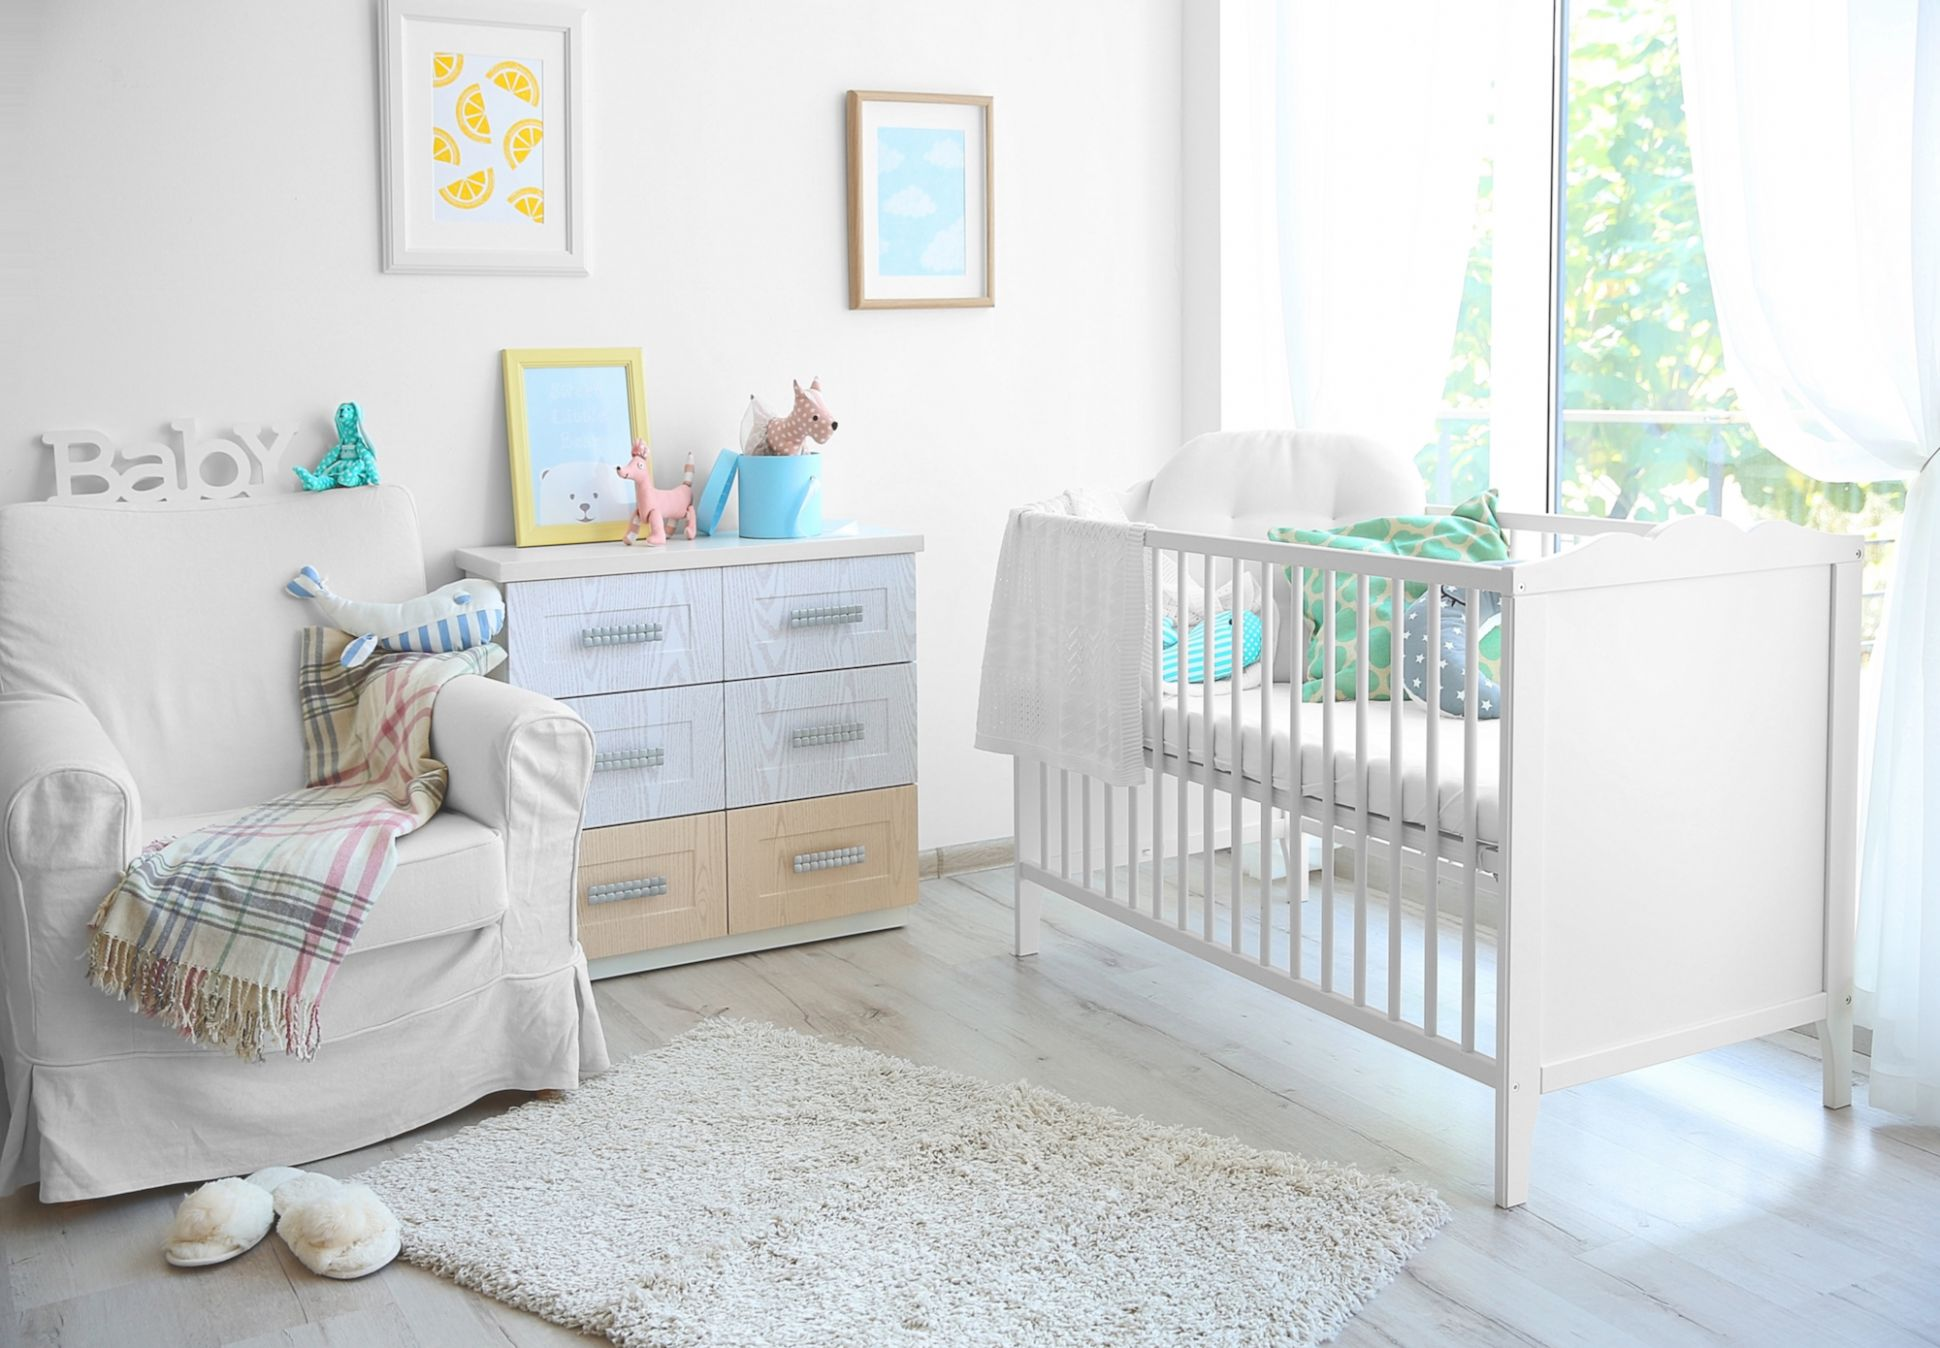 11 Design Tips to Spruce up a Nursery or Kids' Room in No Time ...